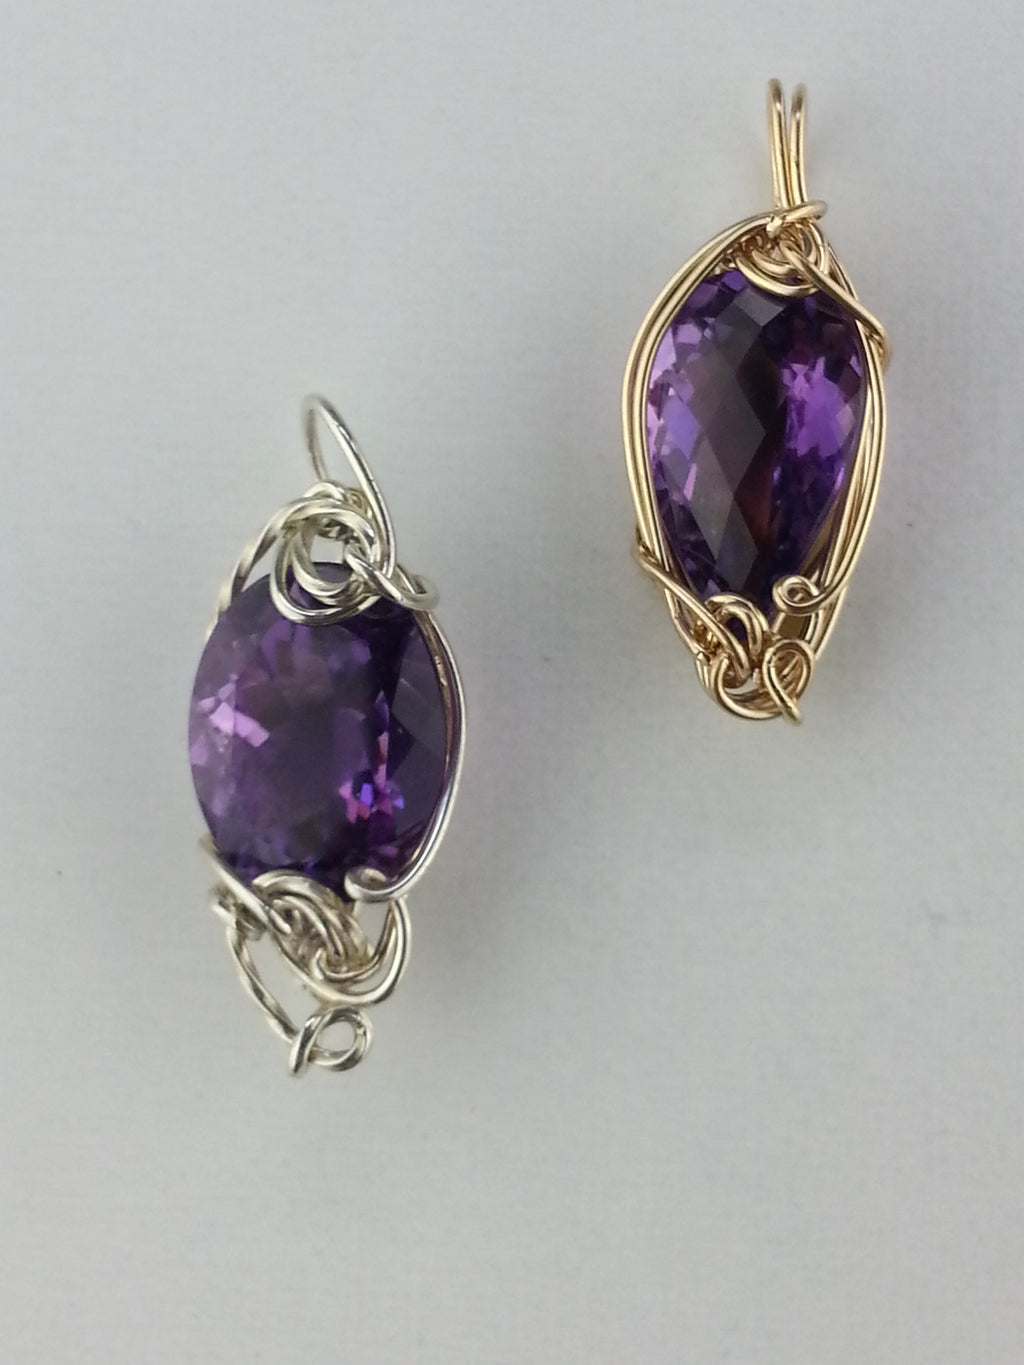 Amethyst Pendants wrapped in Sterling Silver or Gold